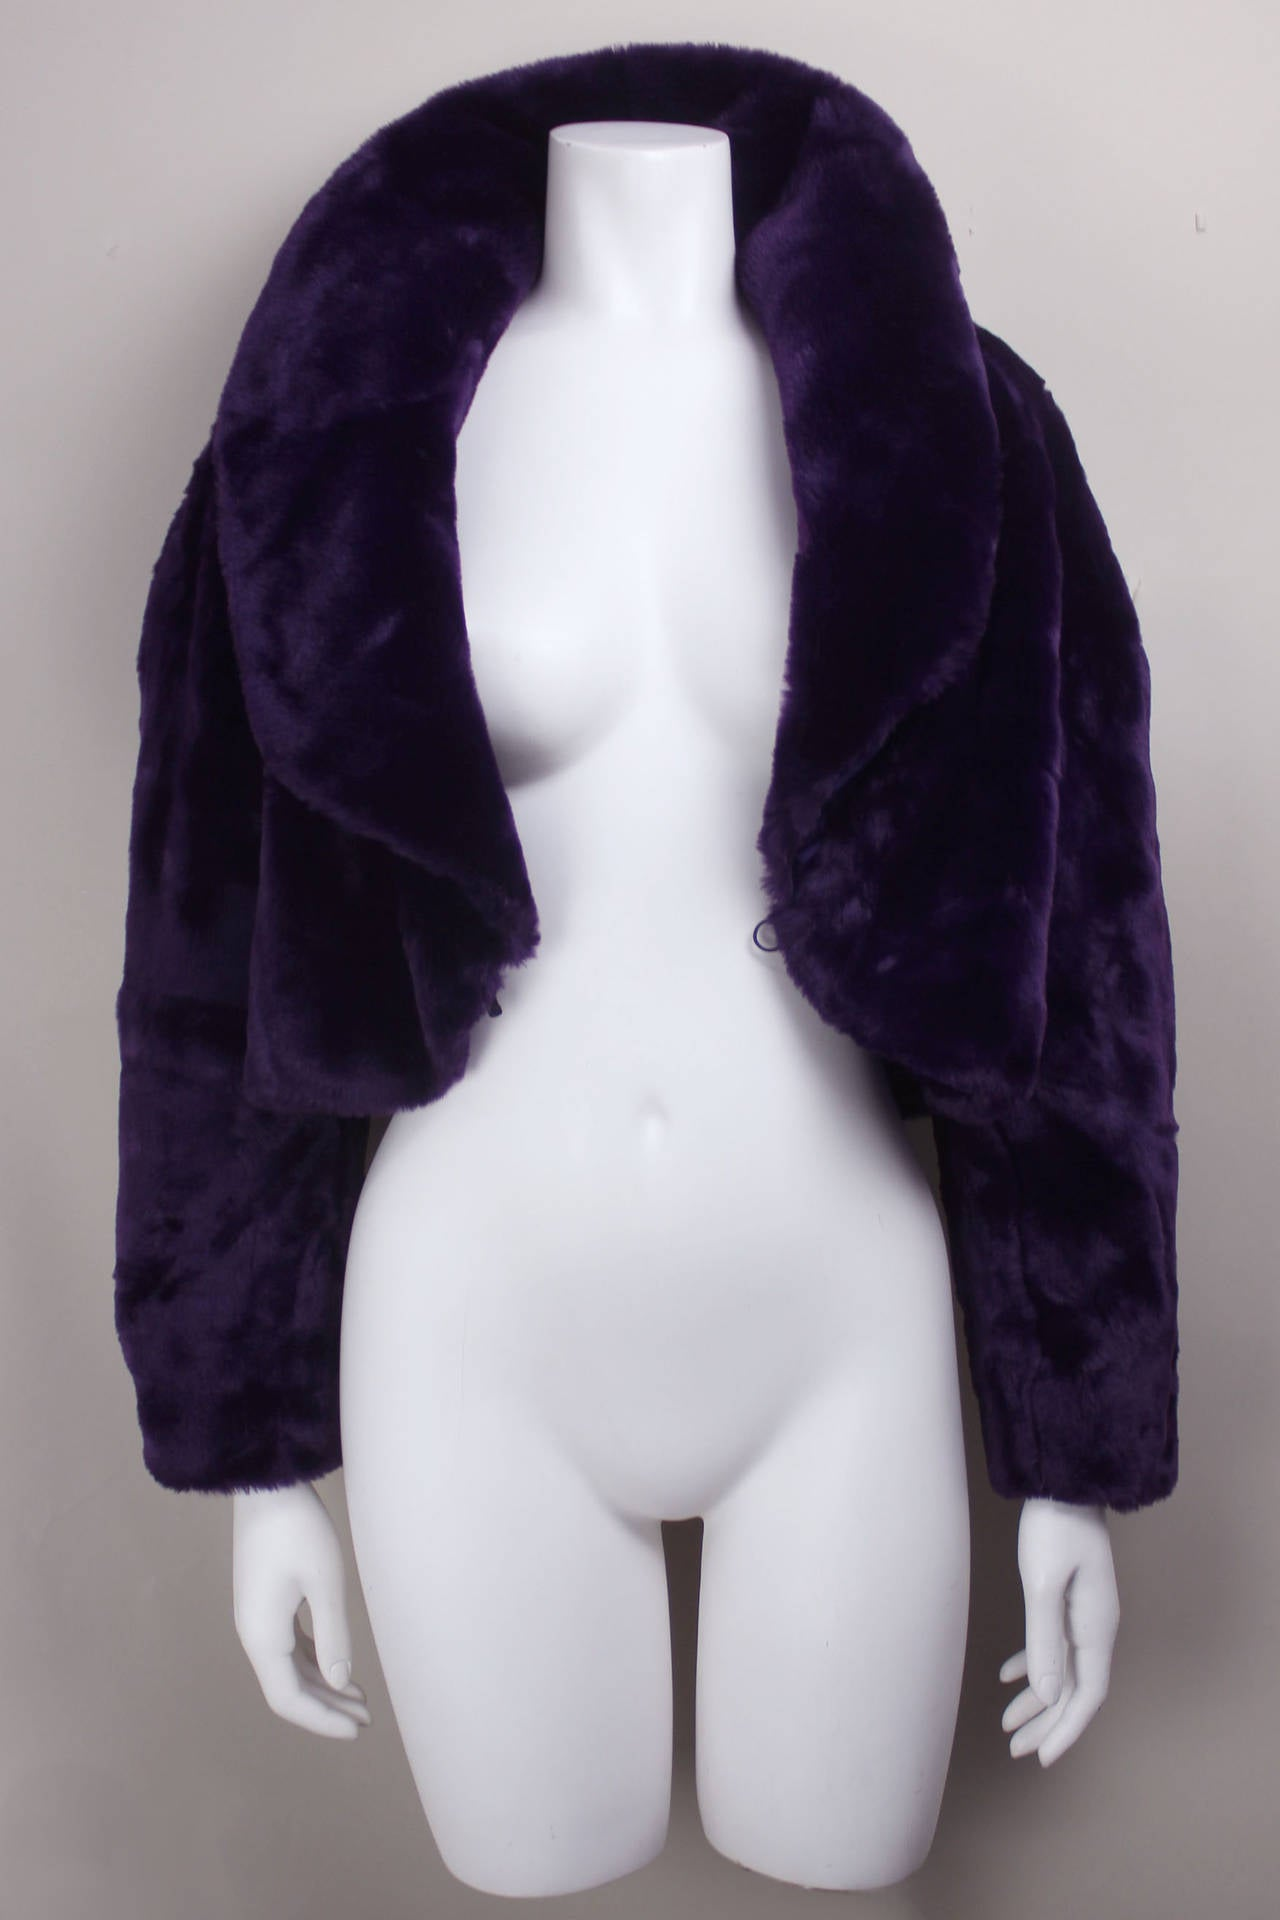 This jacket is of a very luxurious deep purple pile and has a generous shawl collar. It is cropped at the waist in the style of a 1970s chubby jacket.